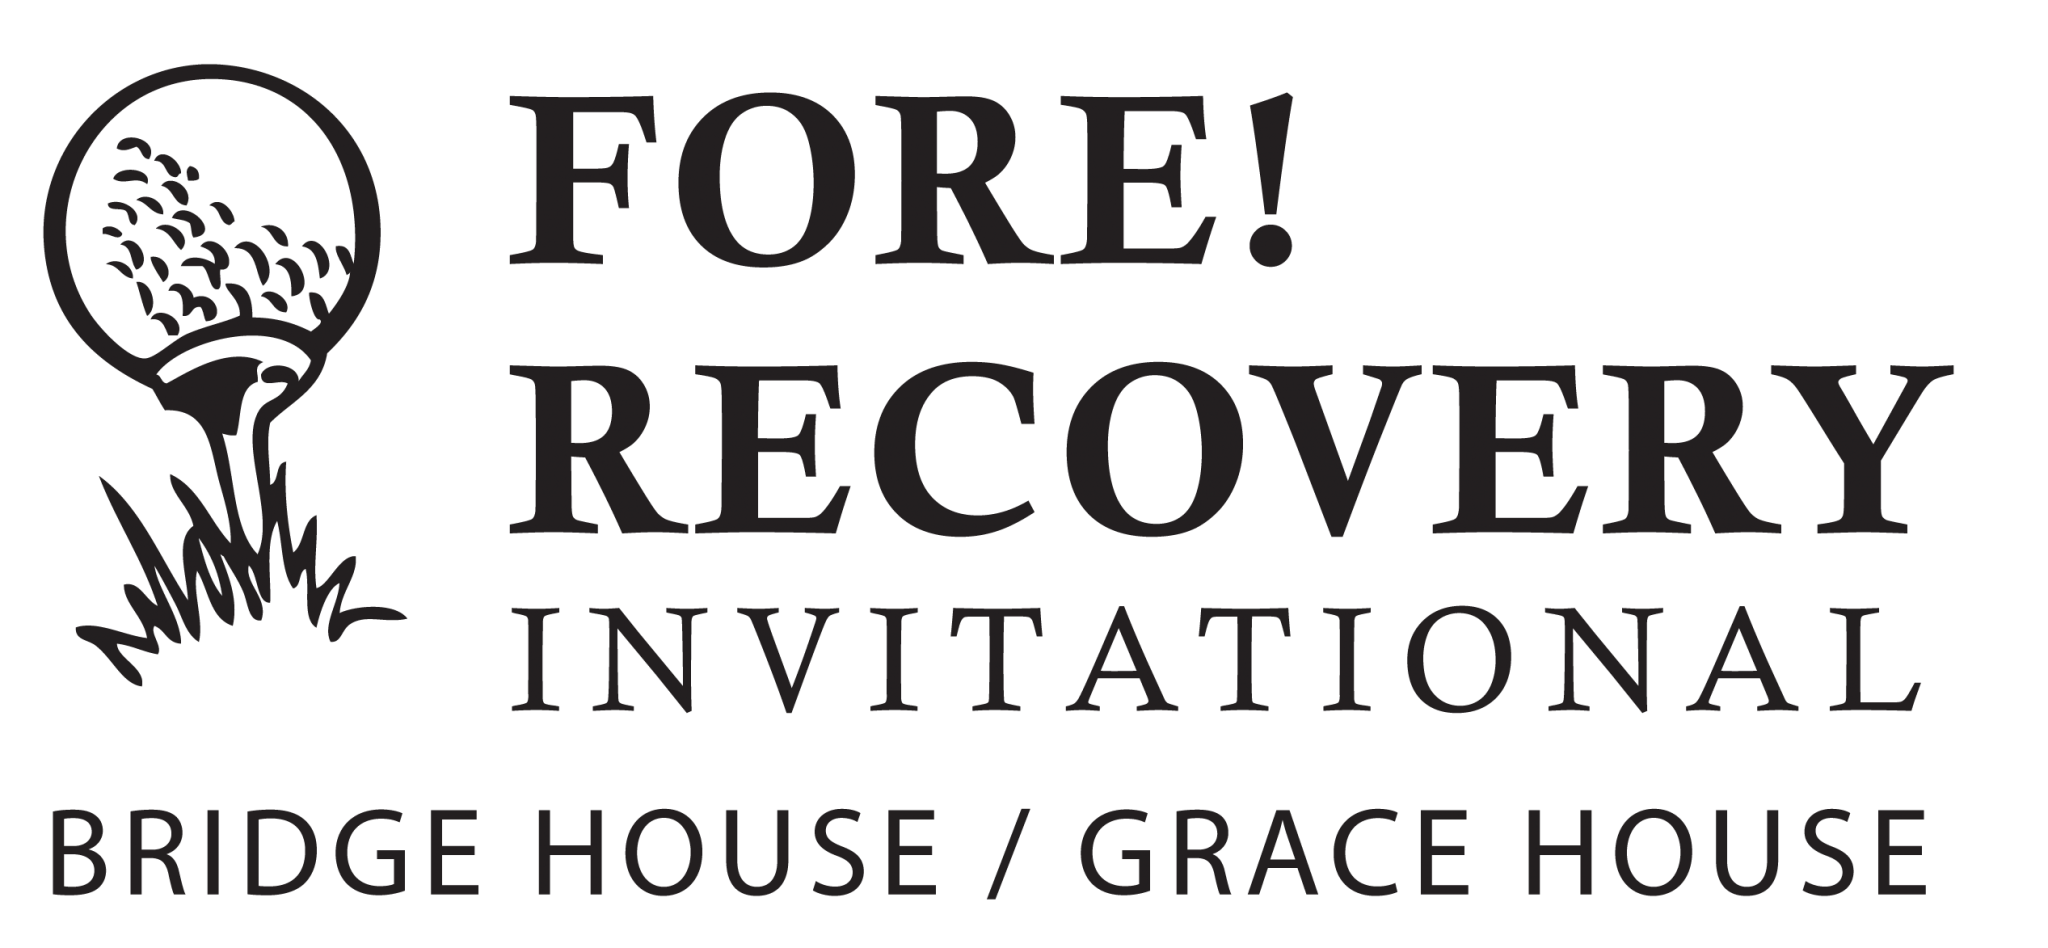 Fore! Recovery Invitational